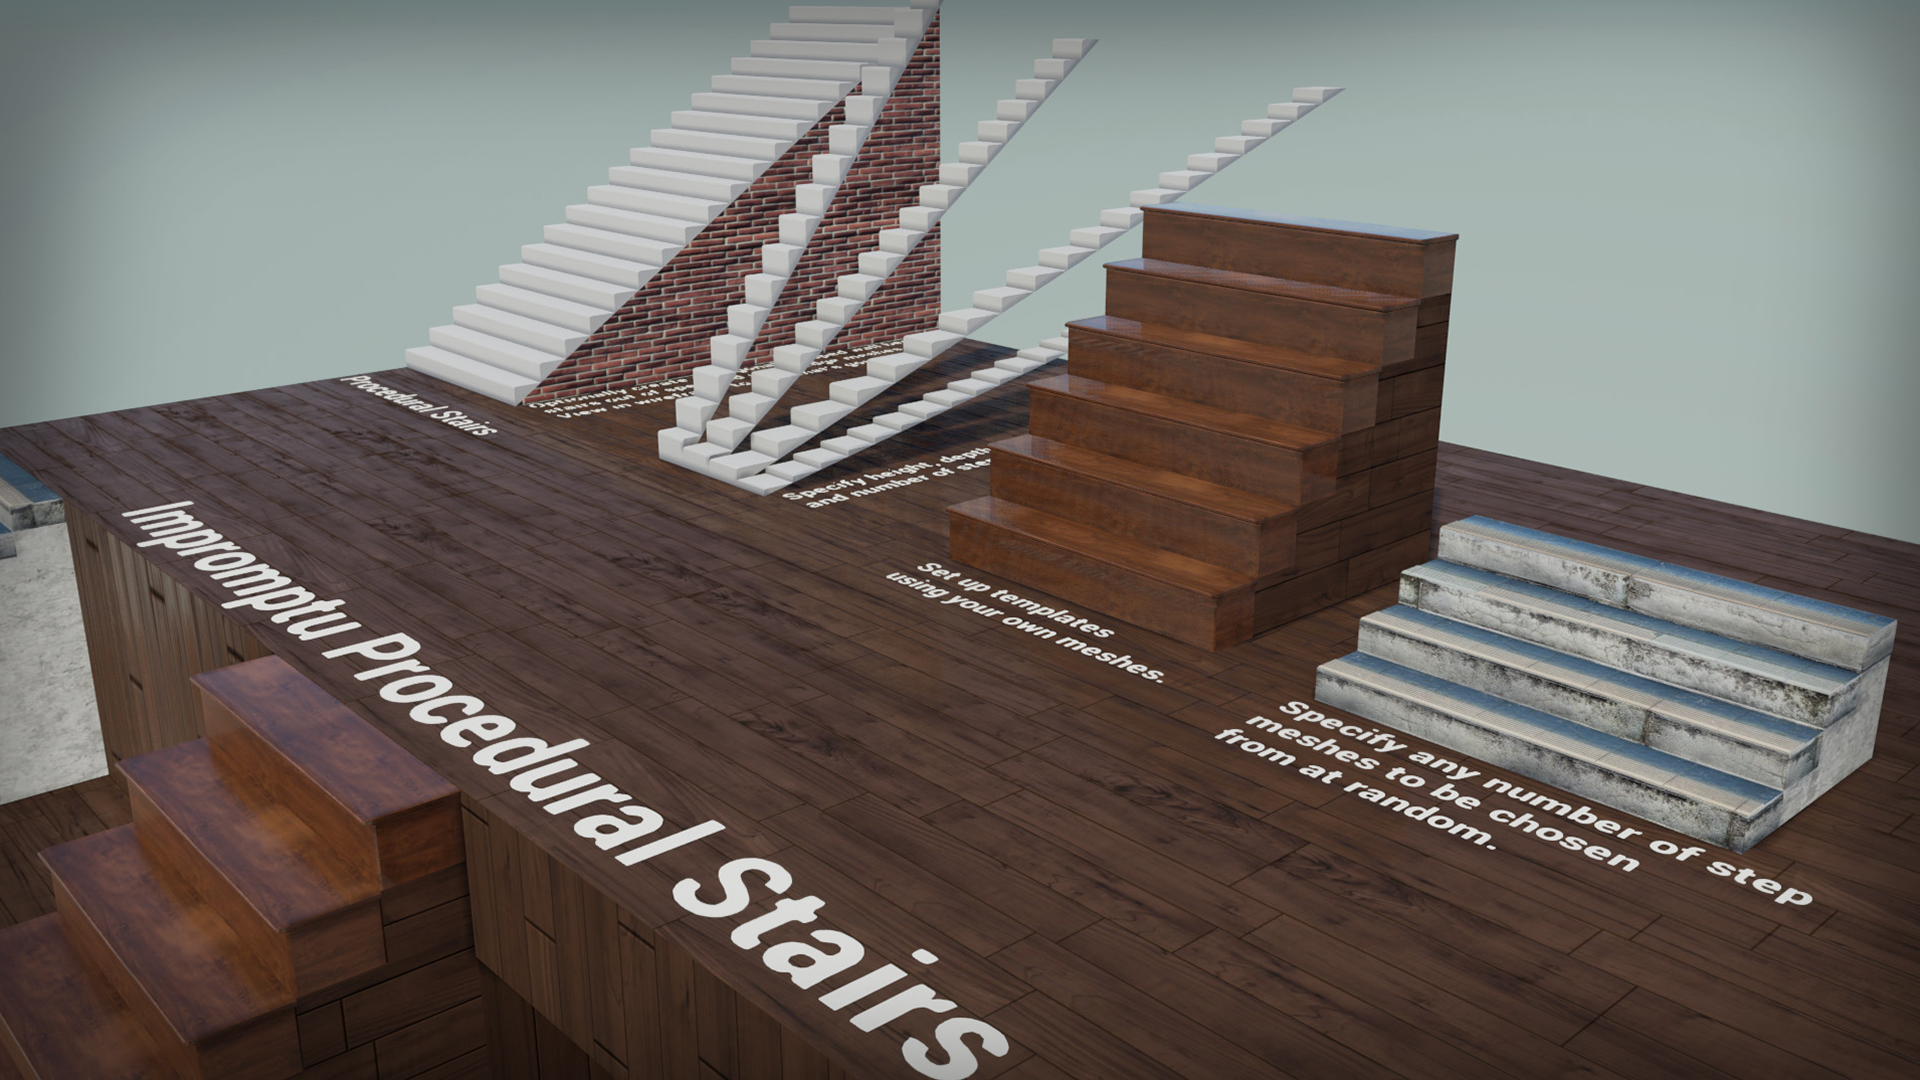 Impromptu Games による Impromptu Procedural Stairs